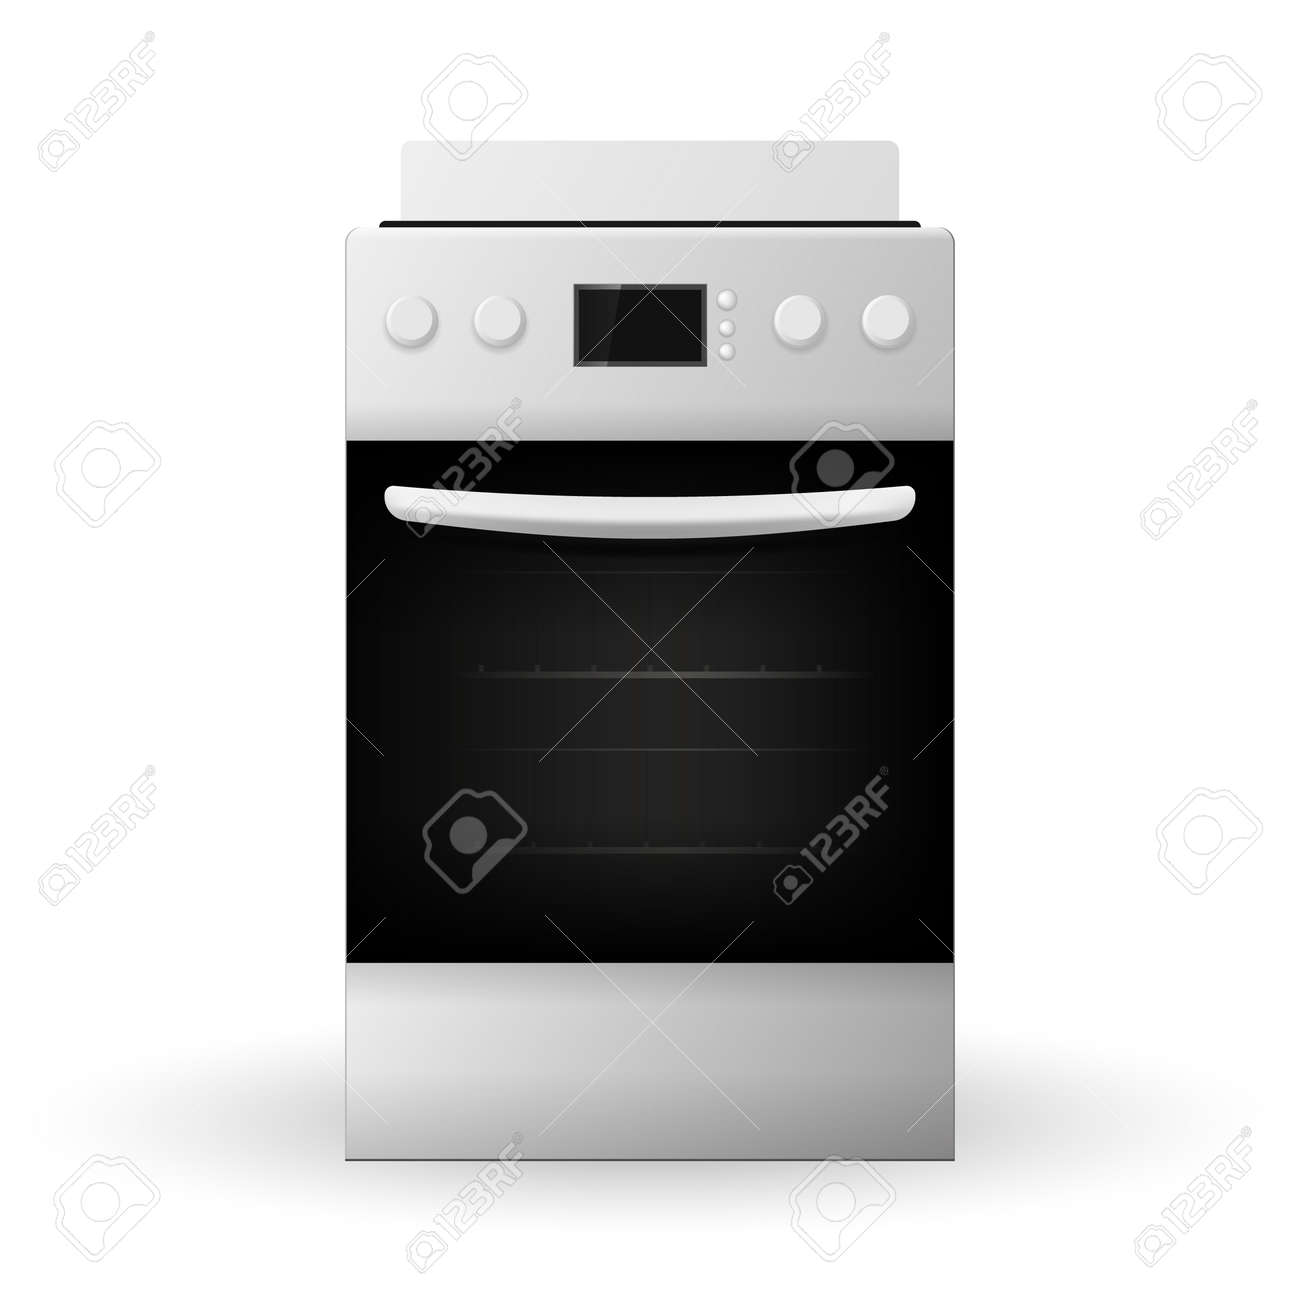 Modern gas stoves Fire New Modern Gas Stove Isolated On White Background 3d Vector Illustration Stock Vector Dreamstimecom New Modern Gas Stove Isolated On White Background 3d Vector